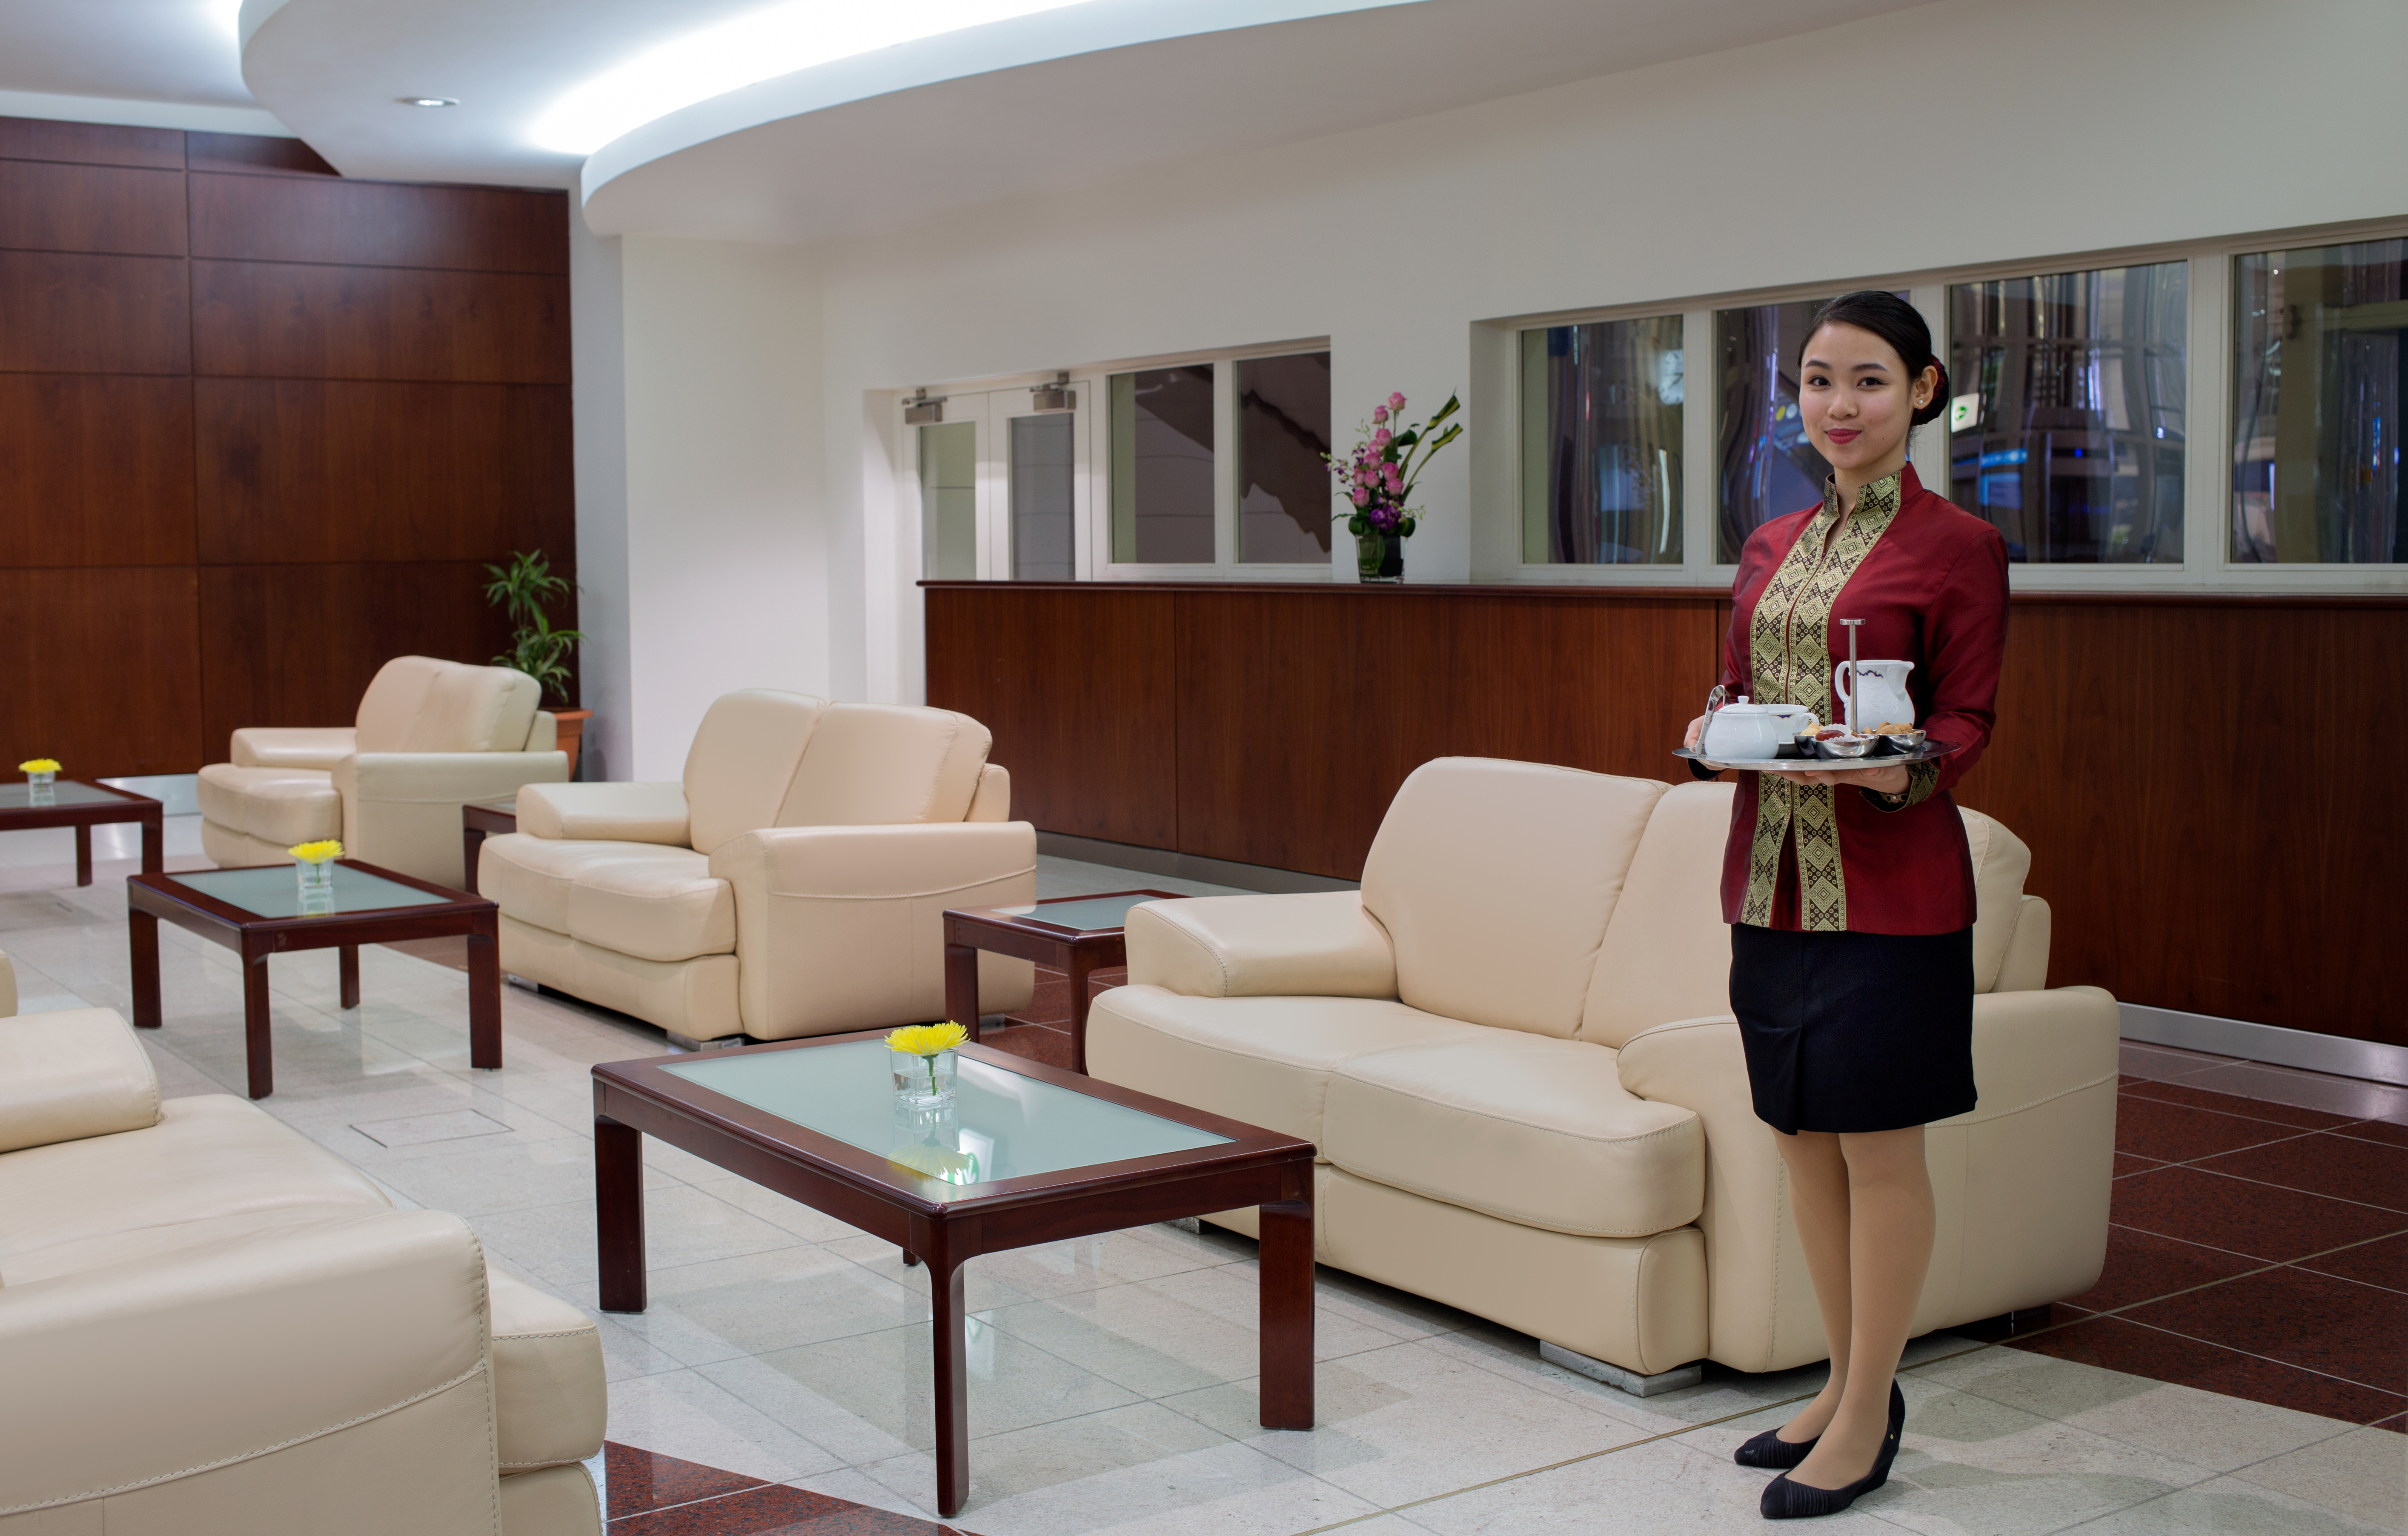 Dubai international hotel introduces transit packages well as the airports premier concierge service ahlan meet greet offered at terminals 1 and 3 the hotel has also launched dih rewards a loyalty m4hsunfo